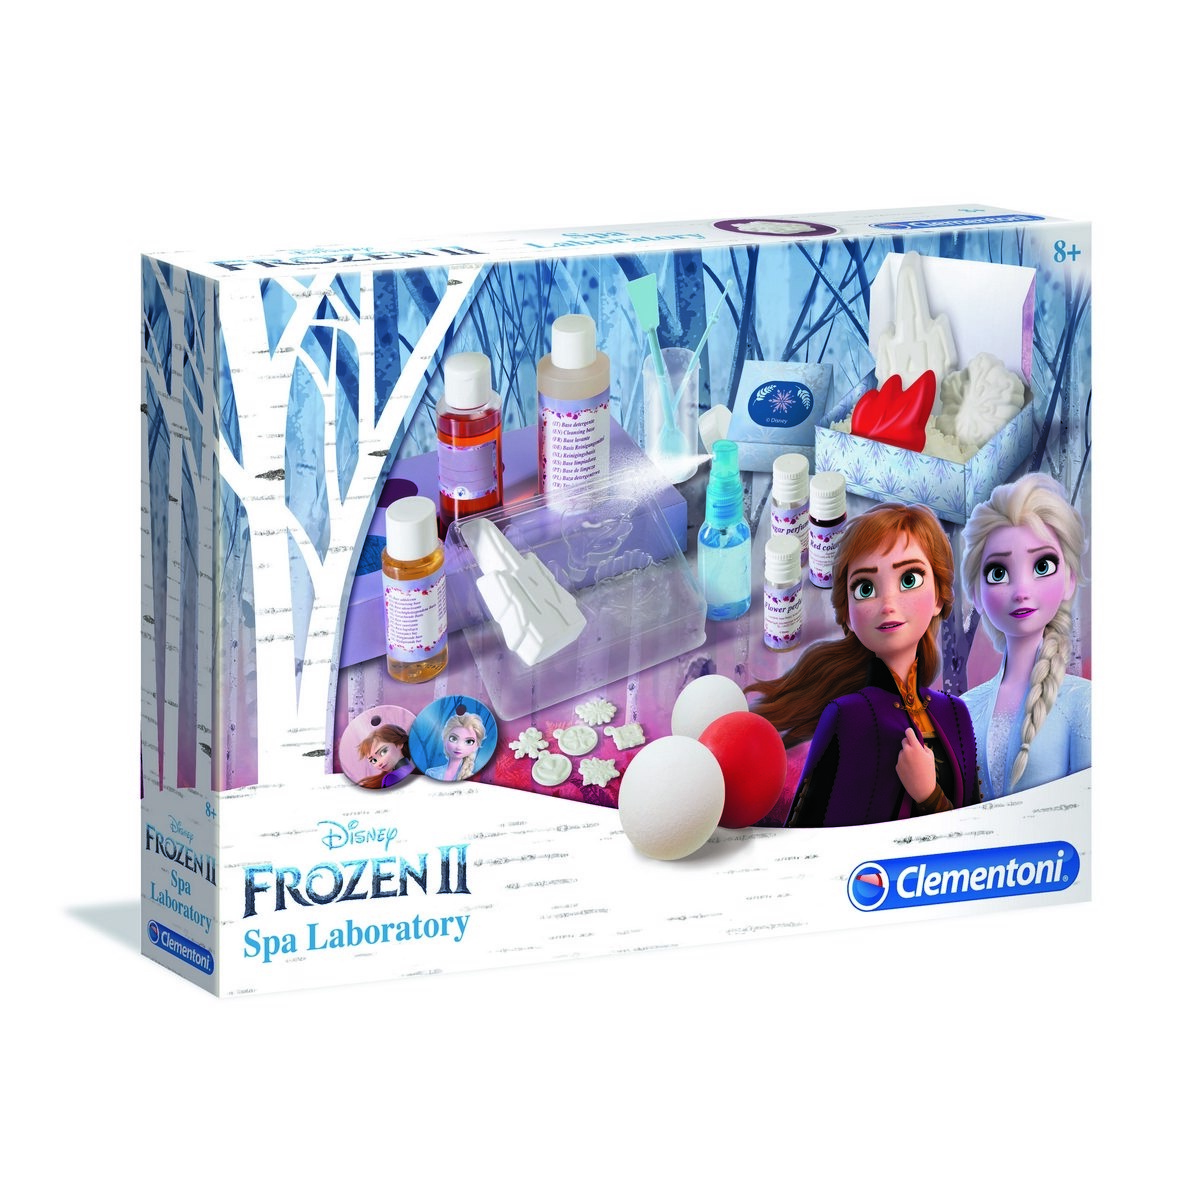 Clementoni Spa laboratoř Frozen 2